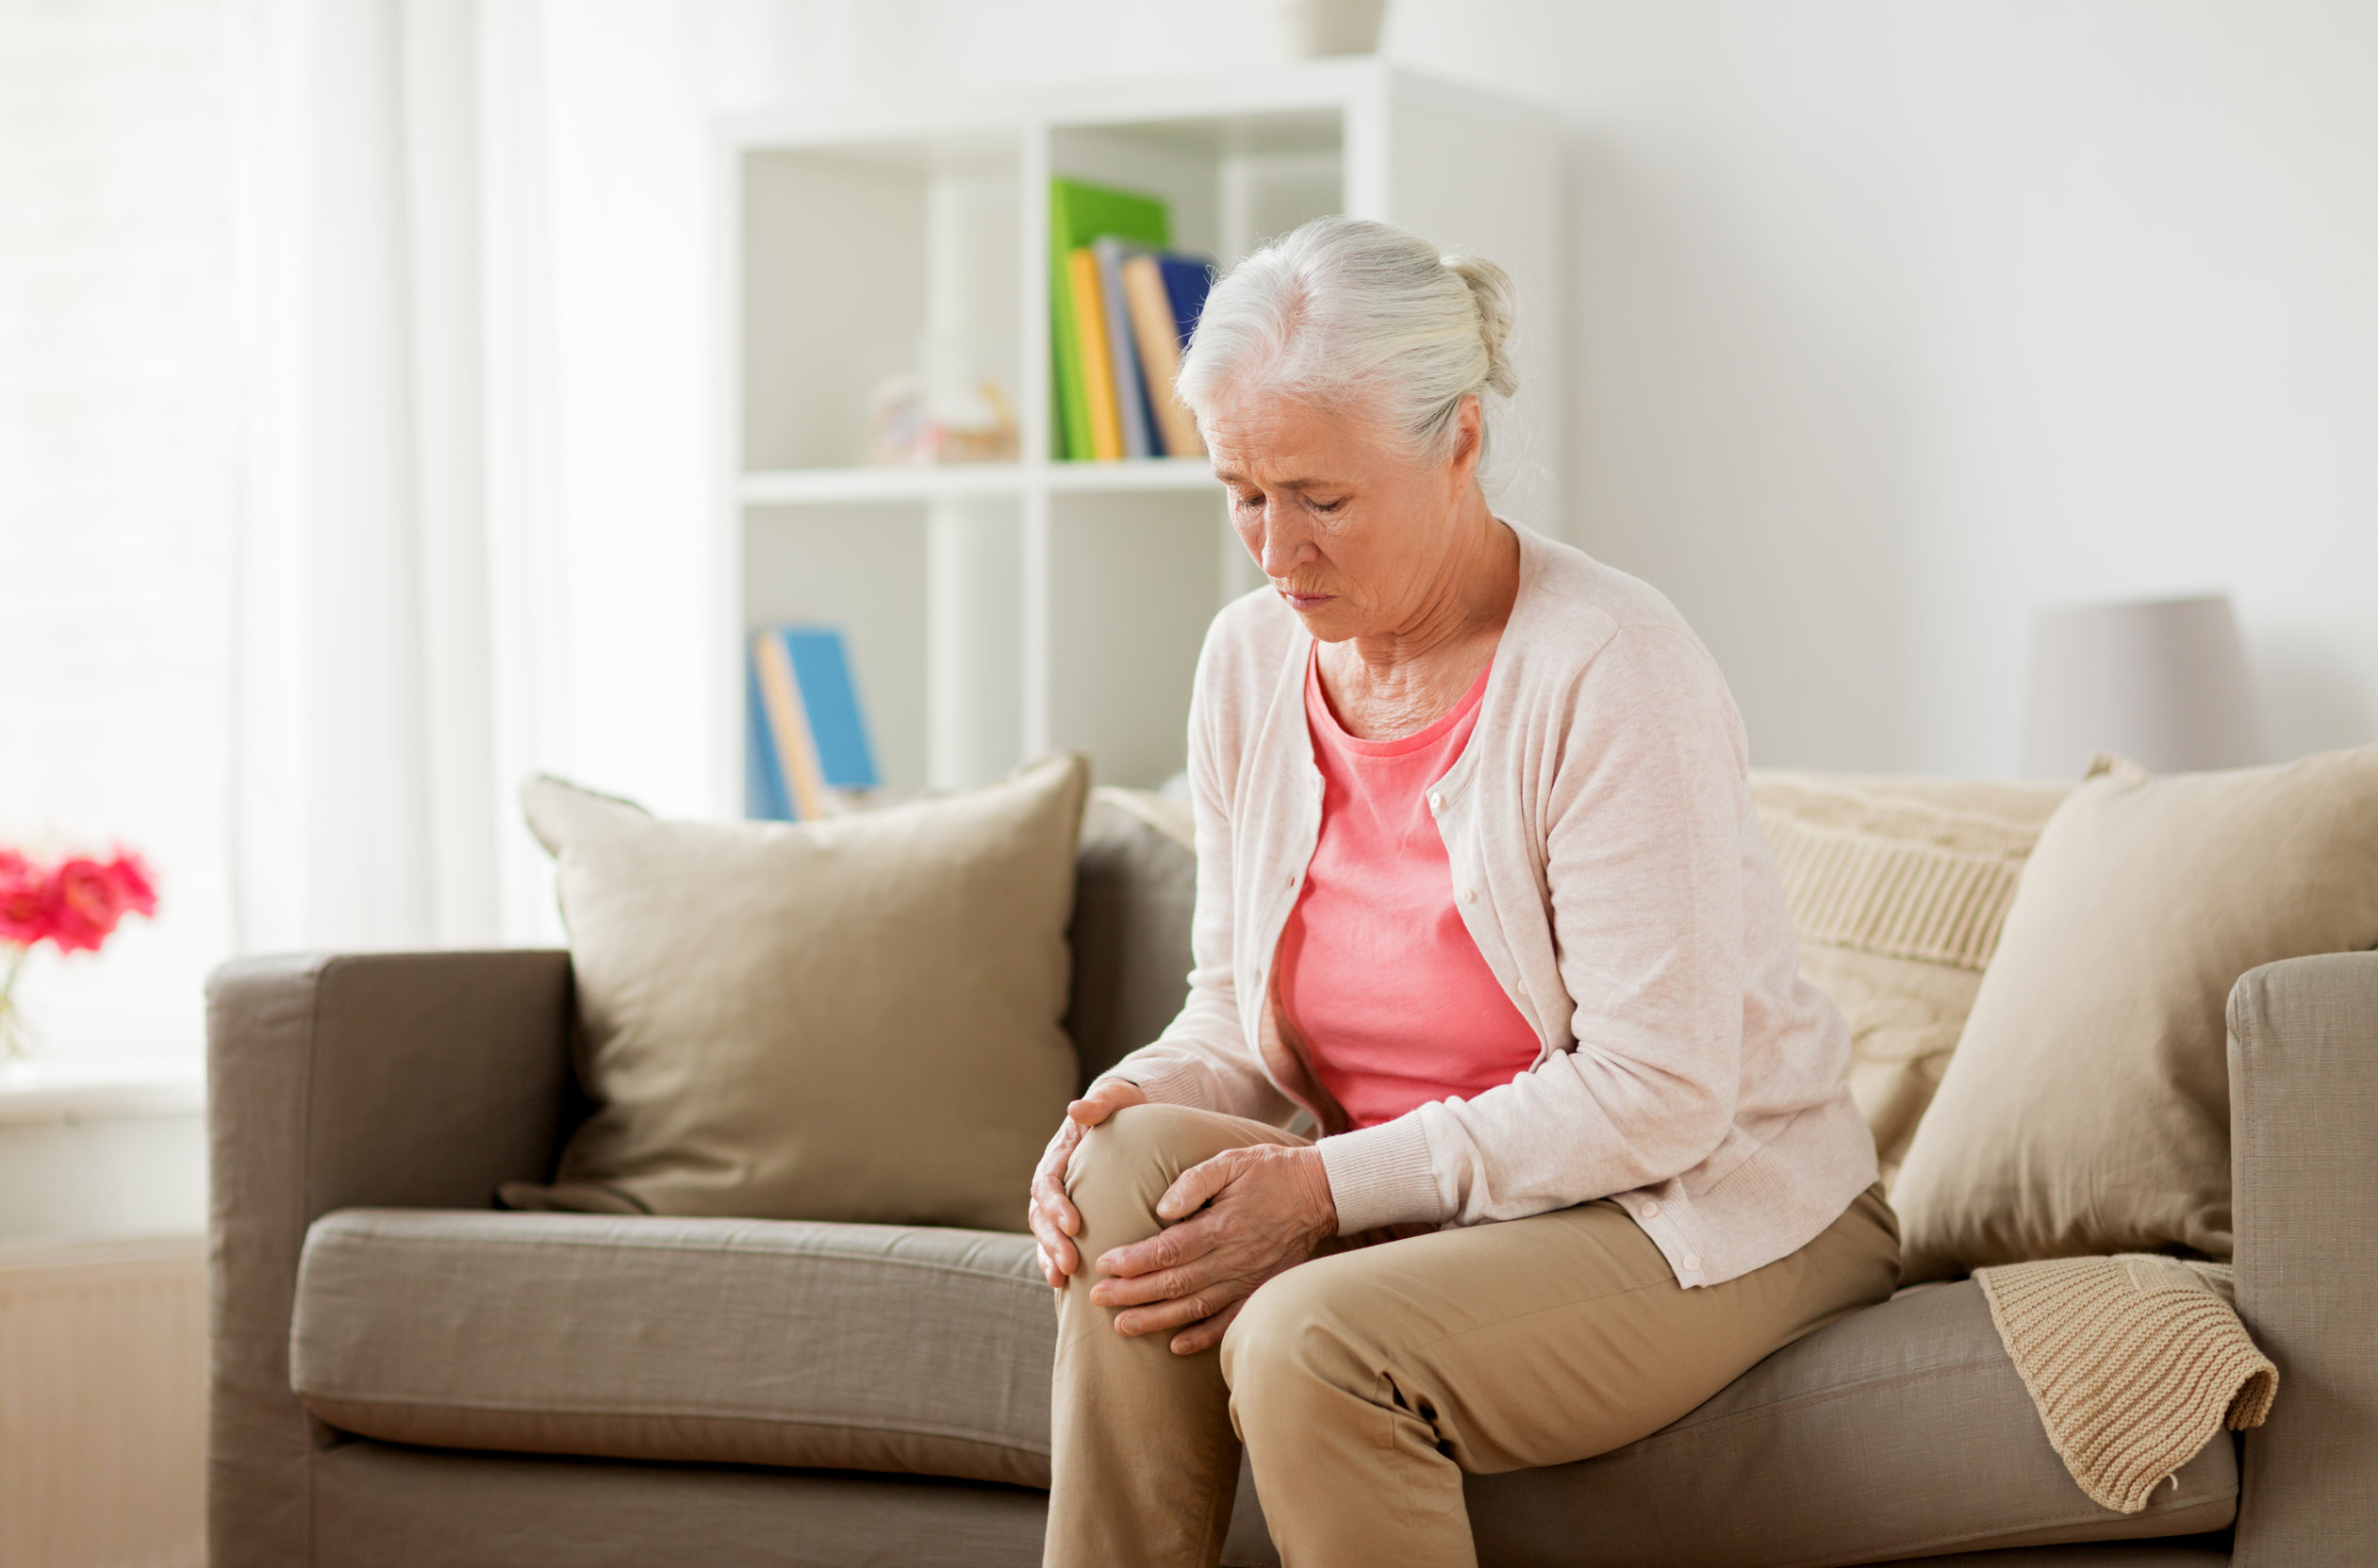 5 Signs You Need Joint Replacement Surgery